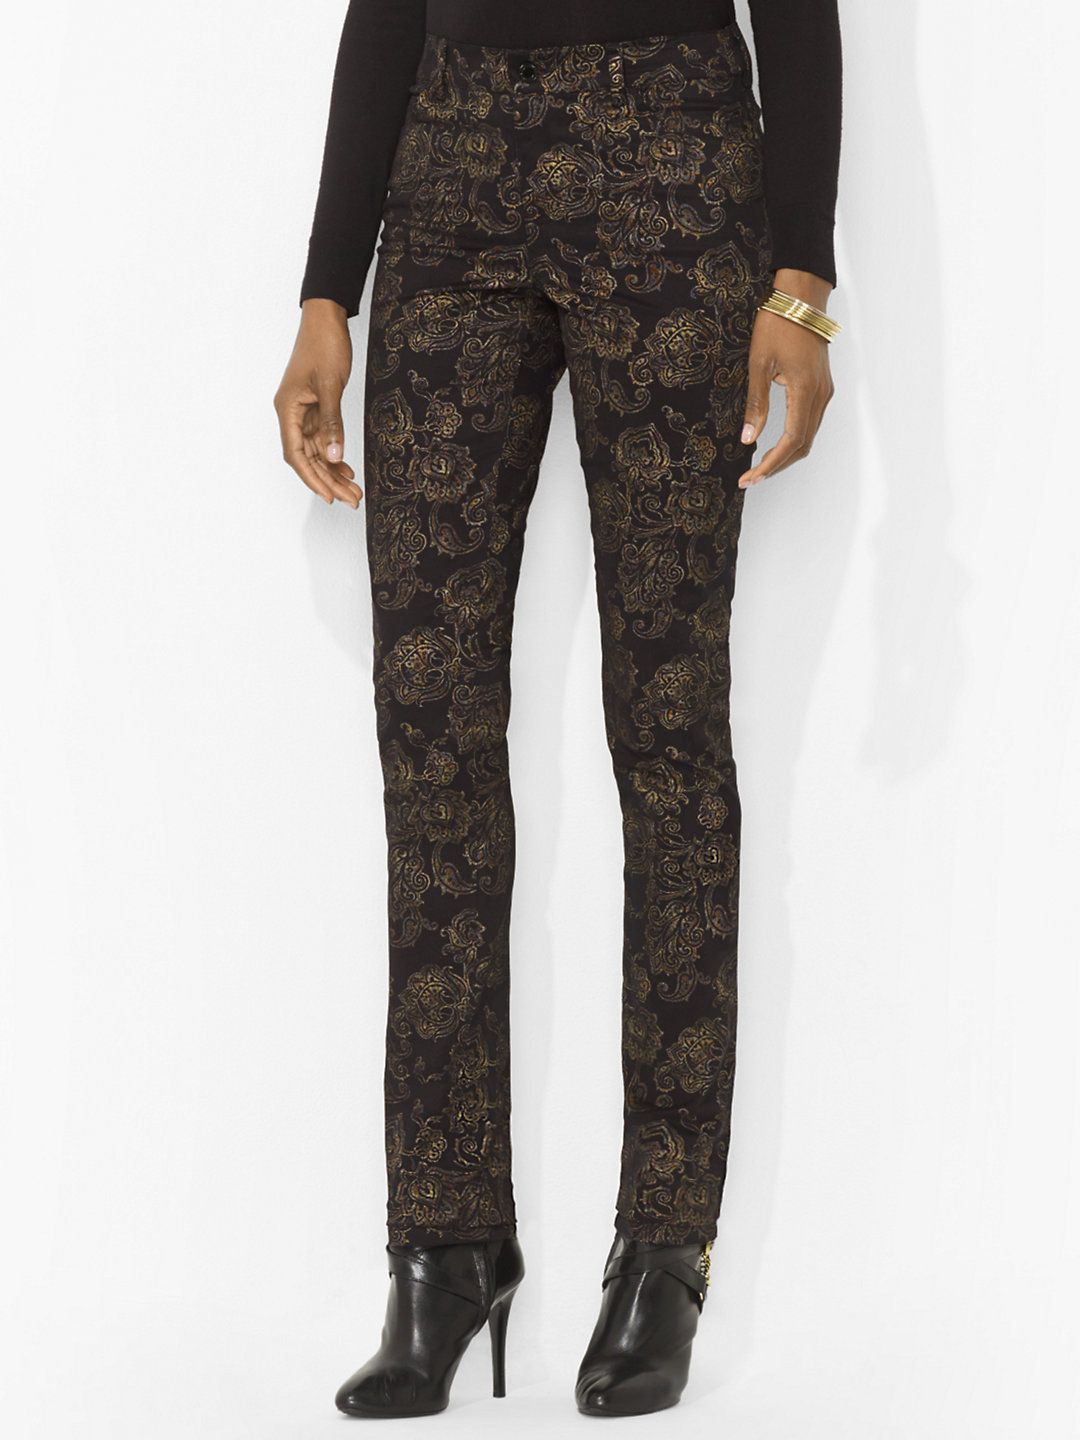 MUST HAVE! Ralph Lauren Printed Slimming Skinny Pant on sale for $89